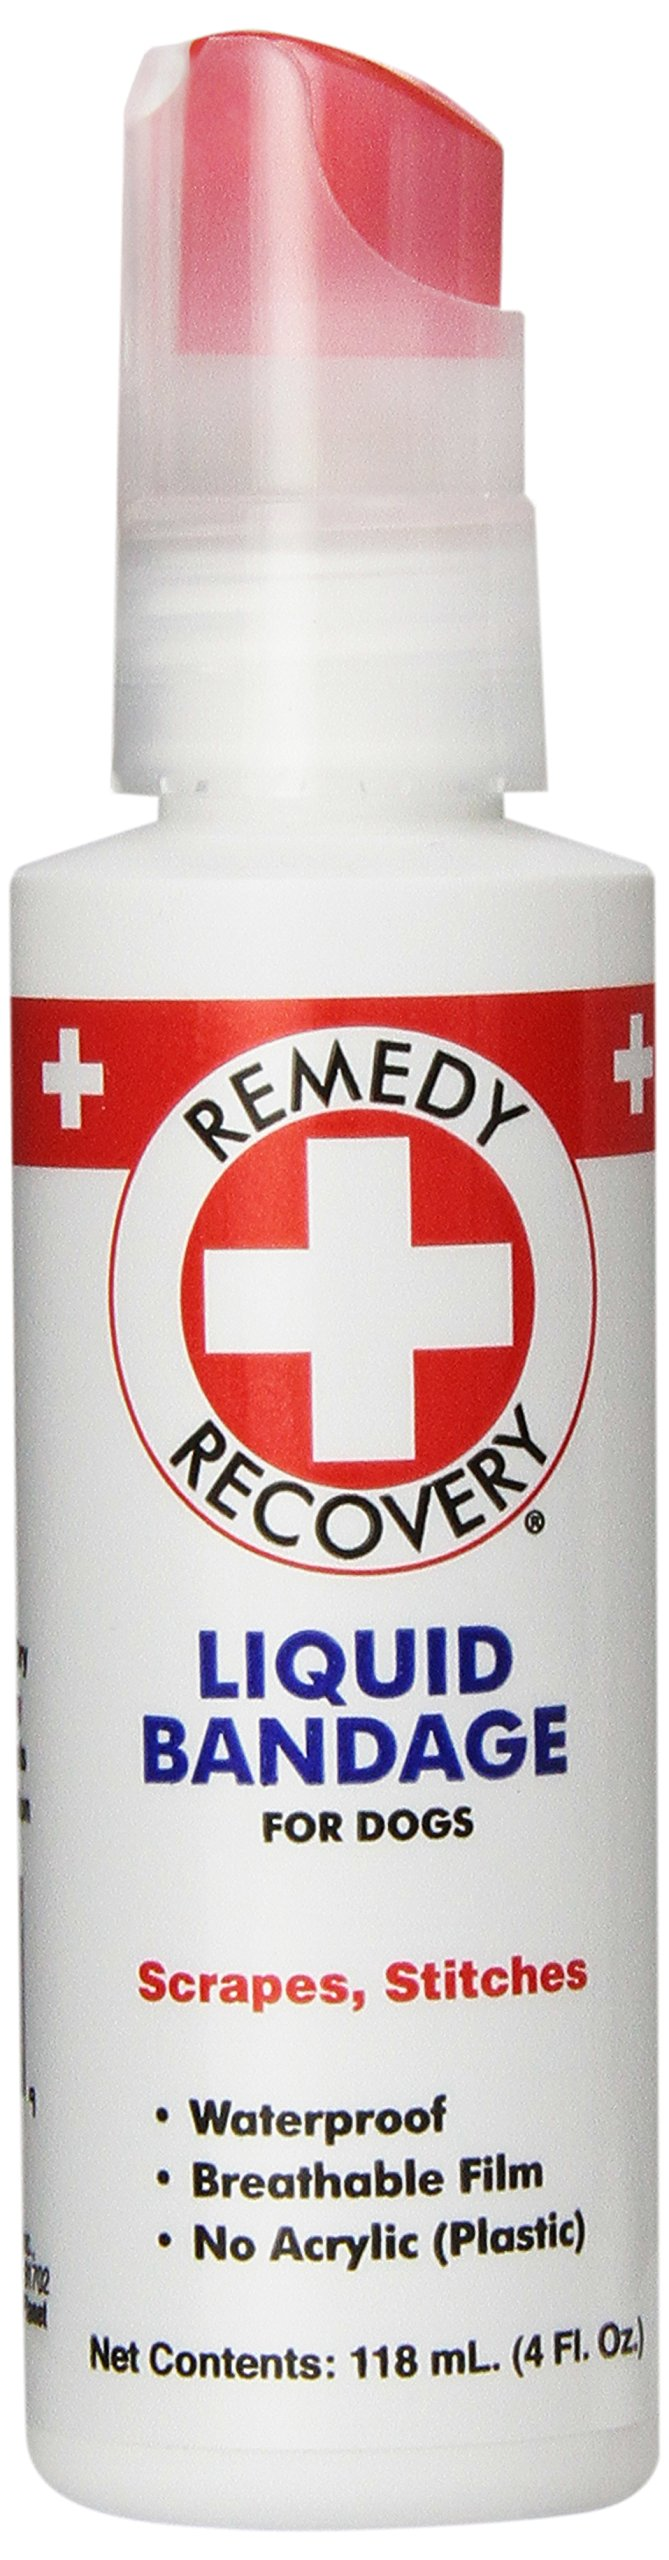 Remedy + Recovery Liquid Bandage for Dogs 4 oz 1-Pack